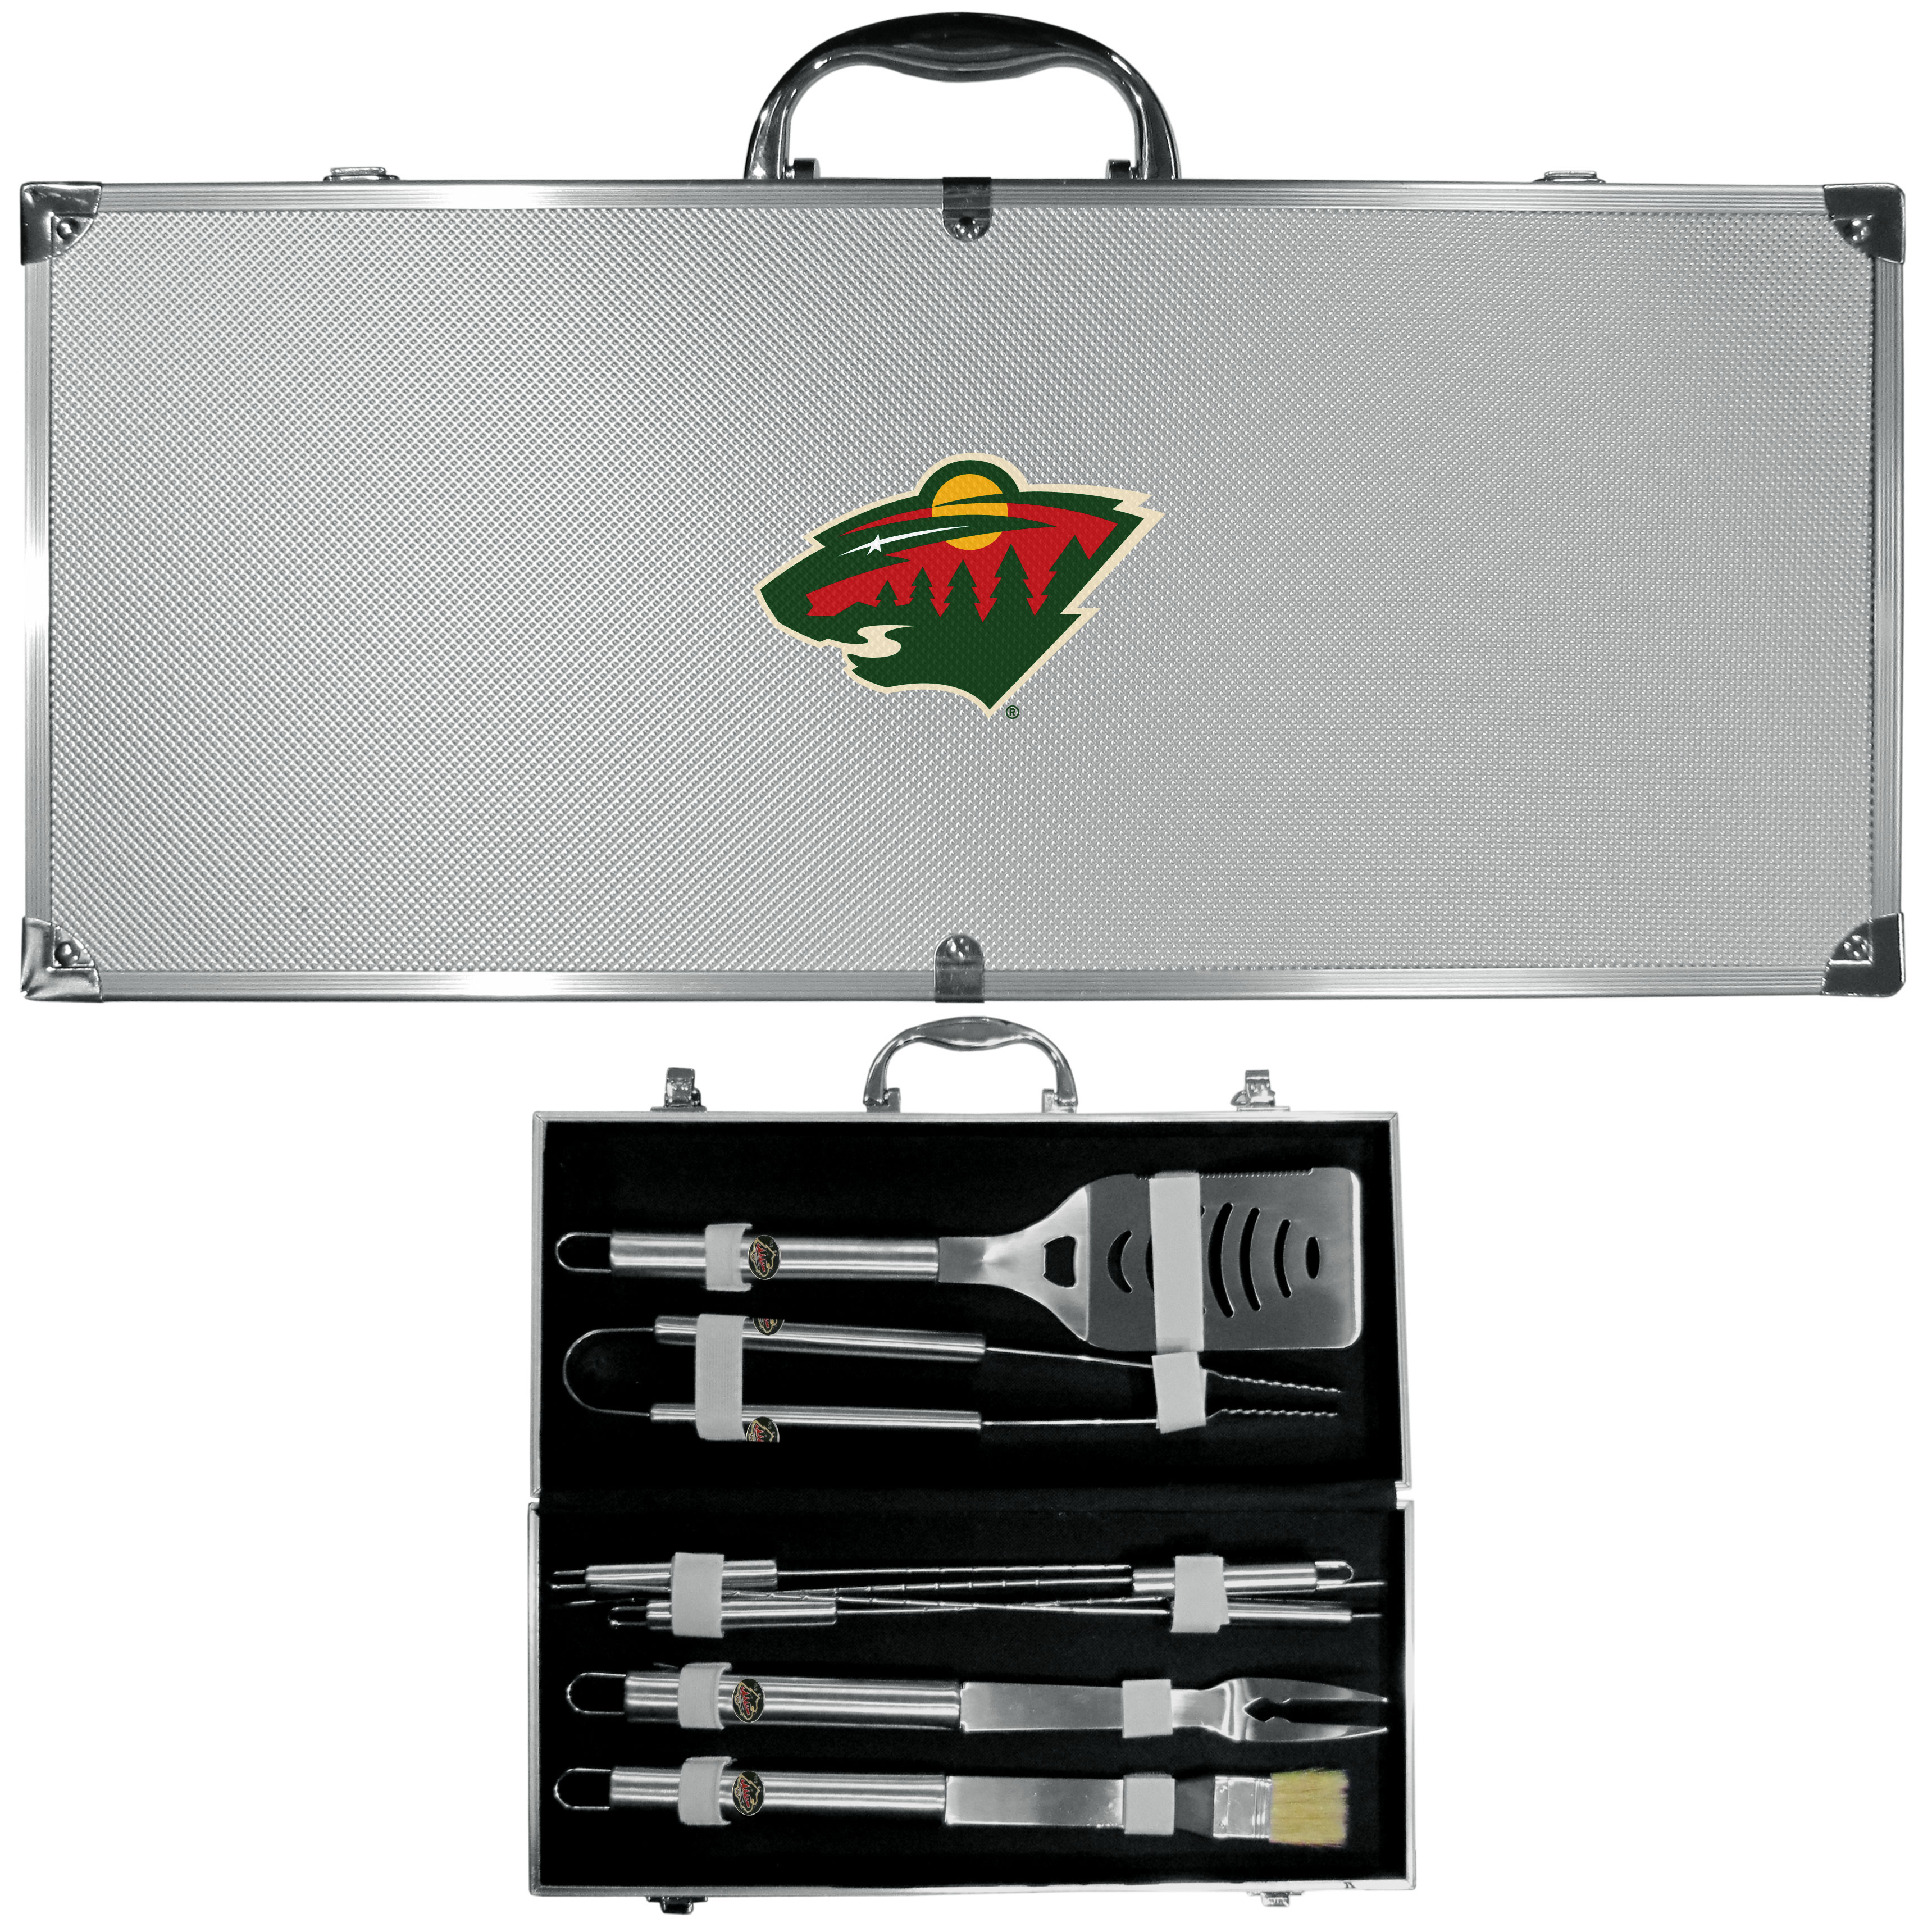 Minnesota Wild® 8 pc Stainless Steel BBQ Set w/Metal Case - This is the ultimate Minnesota Wild® tailgate accessory! The high quality, 420 grade stainless steel tools are durable and well-made enough to make even the pickiest grill master smile. This complete grill accessory kit includes; 4 skewers, spatula with bottle opener and serrated knife edge, basting brush, tongs and a fork. The 18 inch metal carrying case makes this a great outdoor kit making grilling an ease while camping, tailgating or while having a game day party on your patio. The tools are 17 inches long and feature a metal team emblem. The metal case features a large, metal team emblem with exceptional detail. This high-end men's gift is sure to be a hit as a present on Father's Day or Christmas.